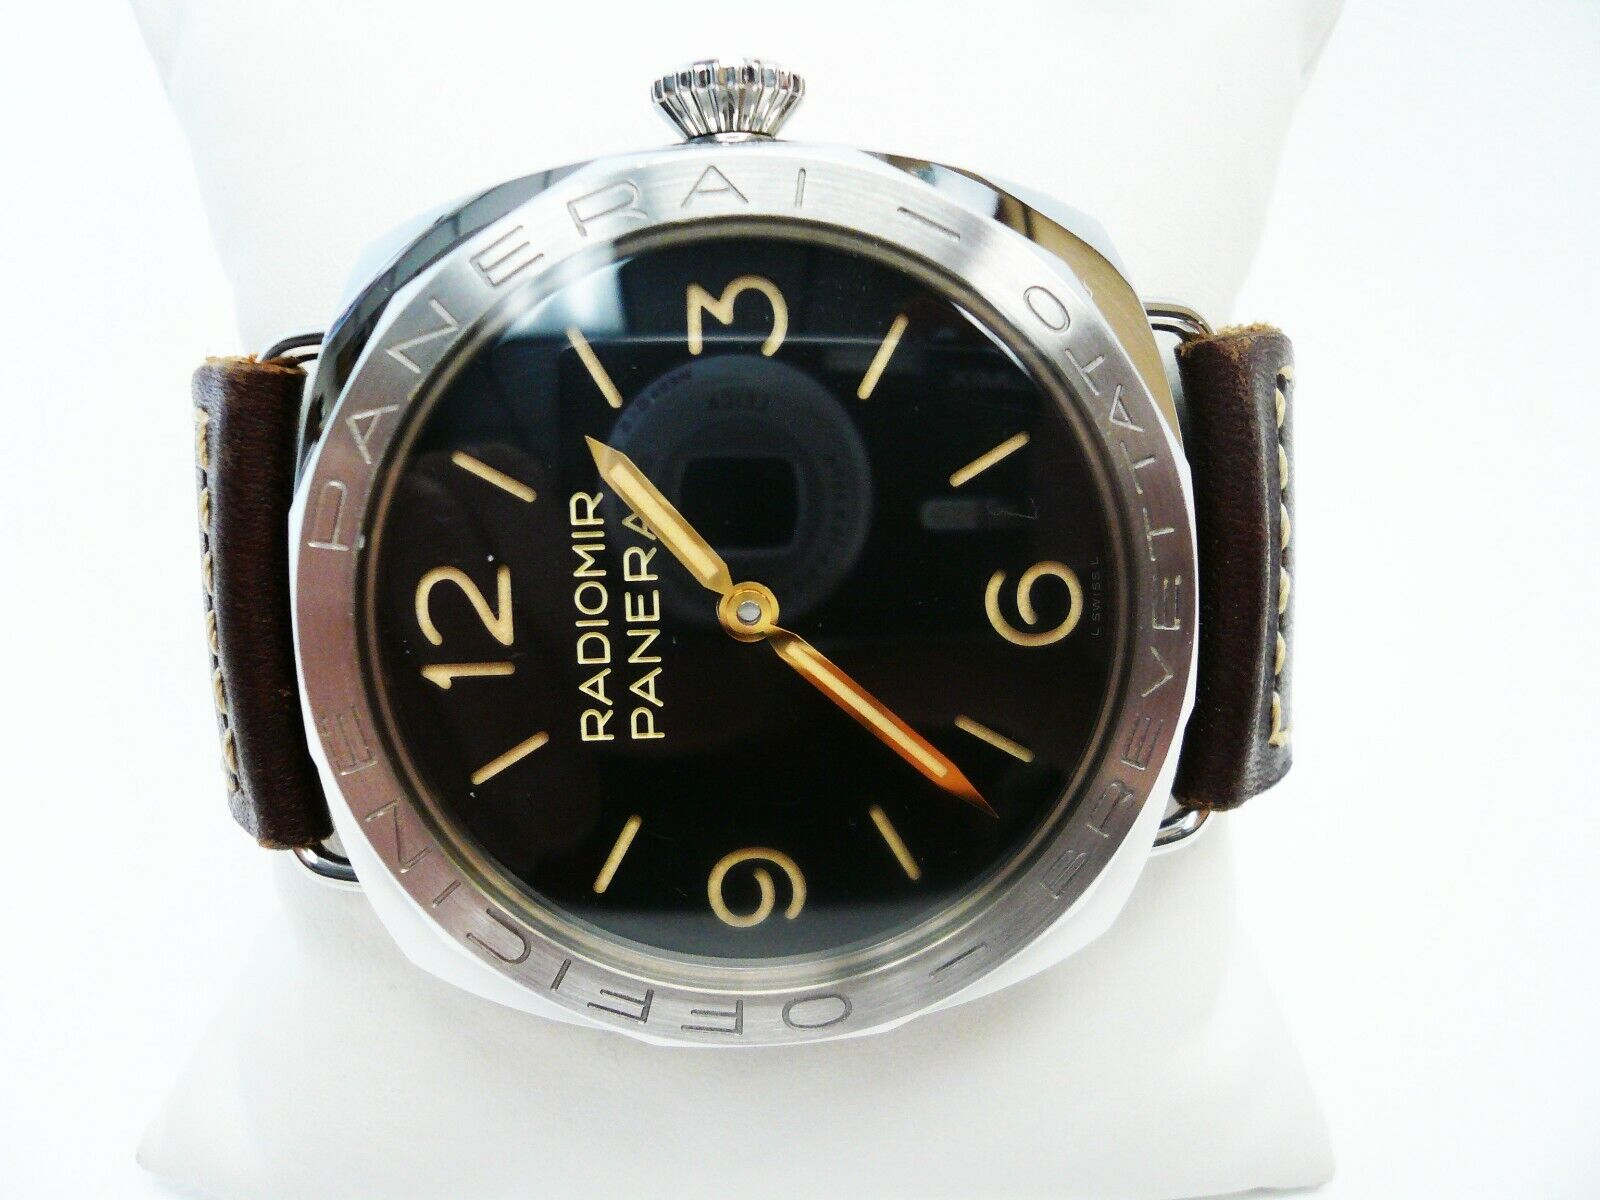 Panerai PAM 685 Radiomir Special Edition 624/1000 SS 3 Day + Boxes Books Certs - watch picture 1